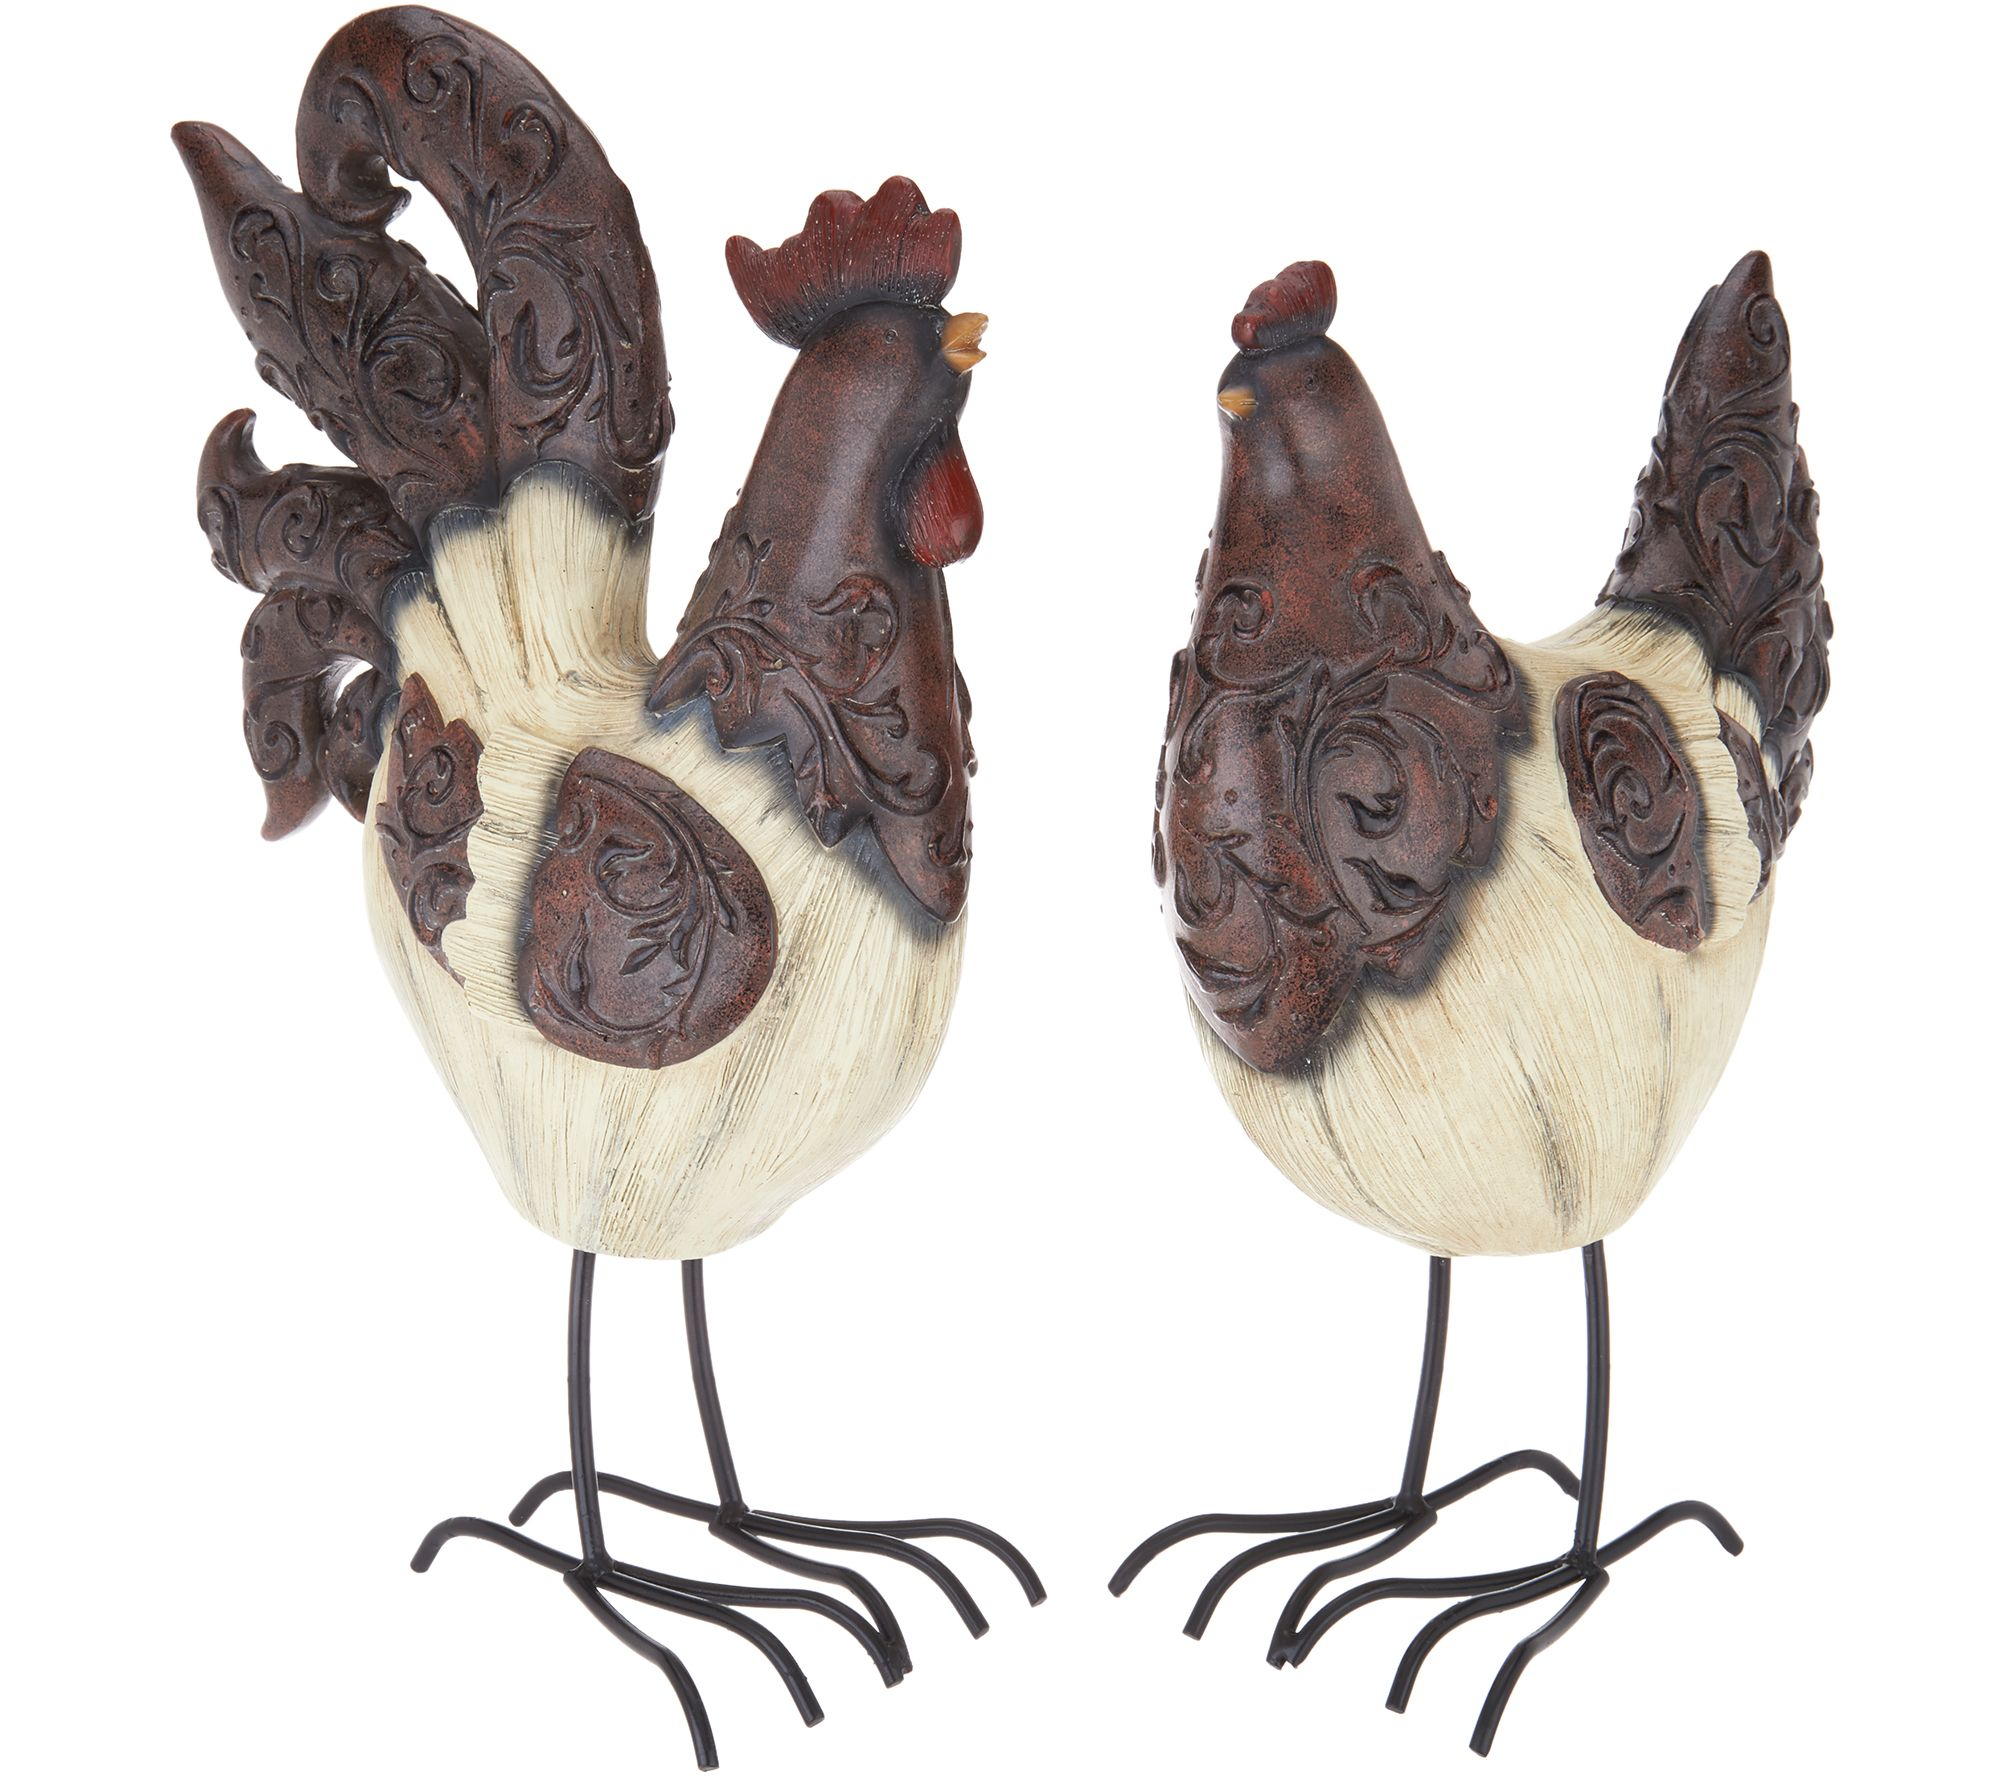 Set of 2 Hen and Rooster Figurines by Valerie